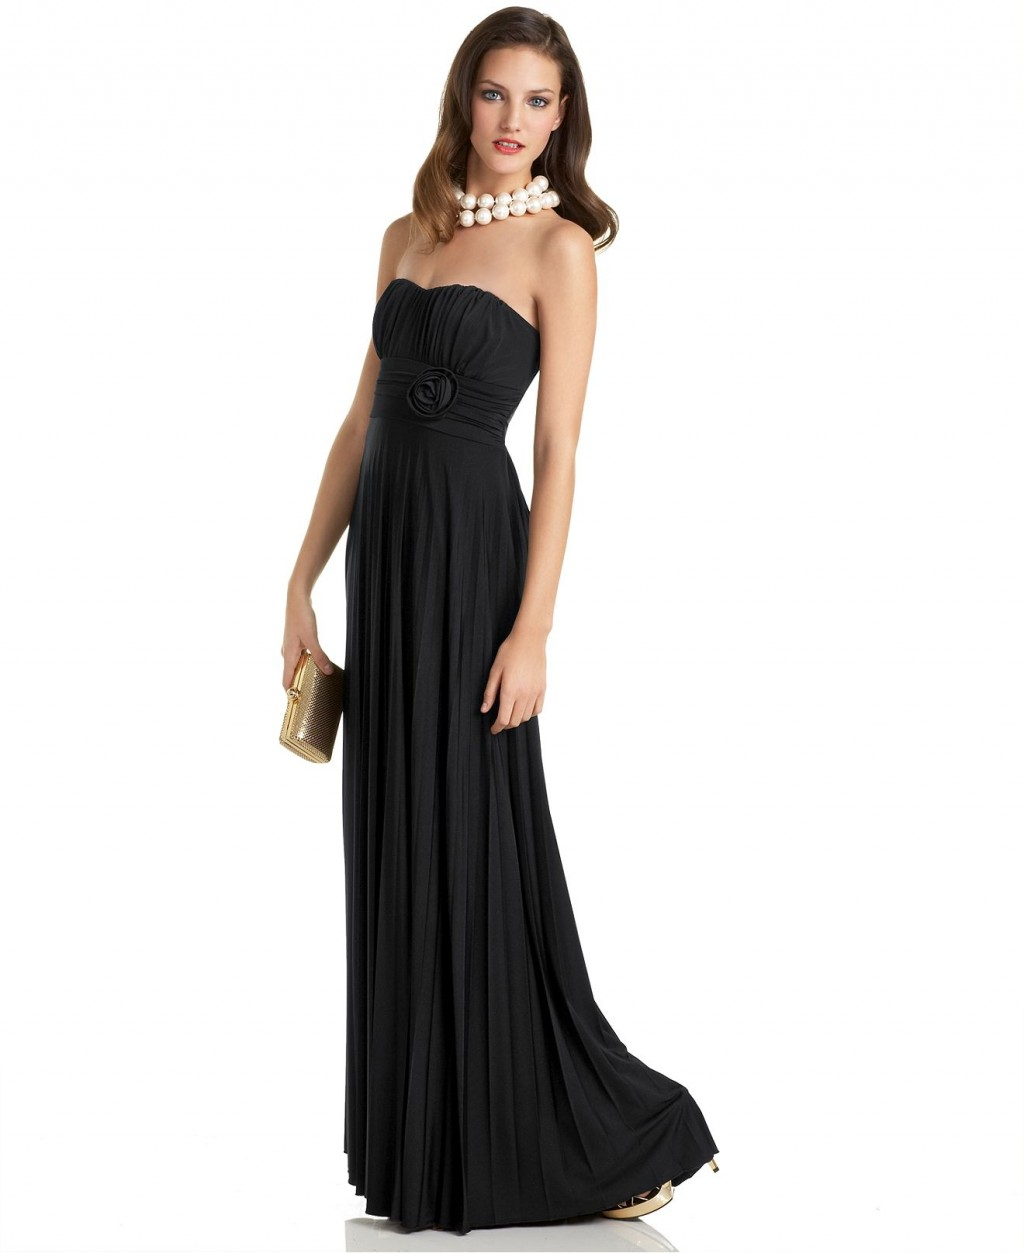 Black Prom Dresses. It's time for prom! Show up to the dance and turn heads in any of our great selection of black prom dresses. We've got all the latest styles and cute designs in the timeless color to choose from. Check them out now! Dress shopping becomes easier (and way more fun) the sooner you narrow down what you're looking for.